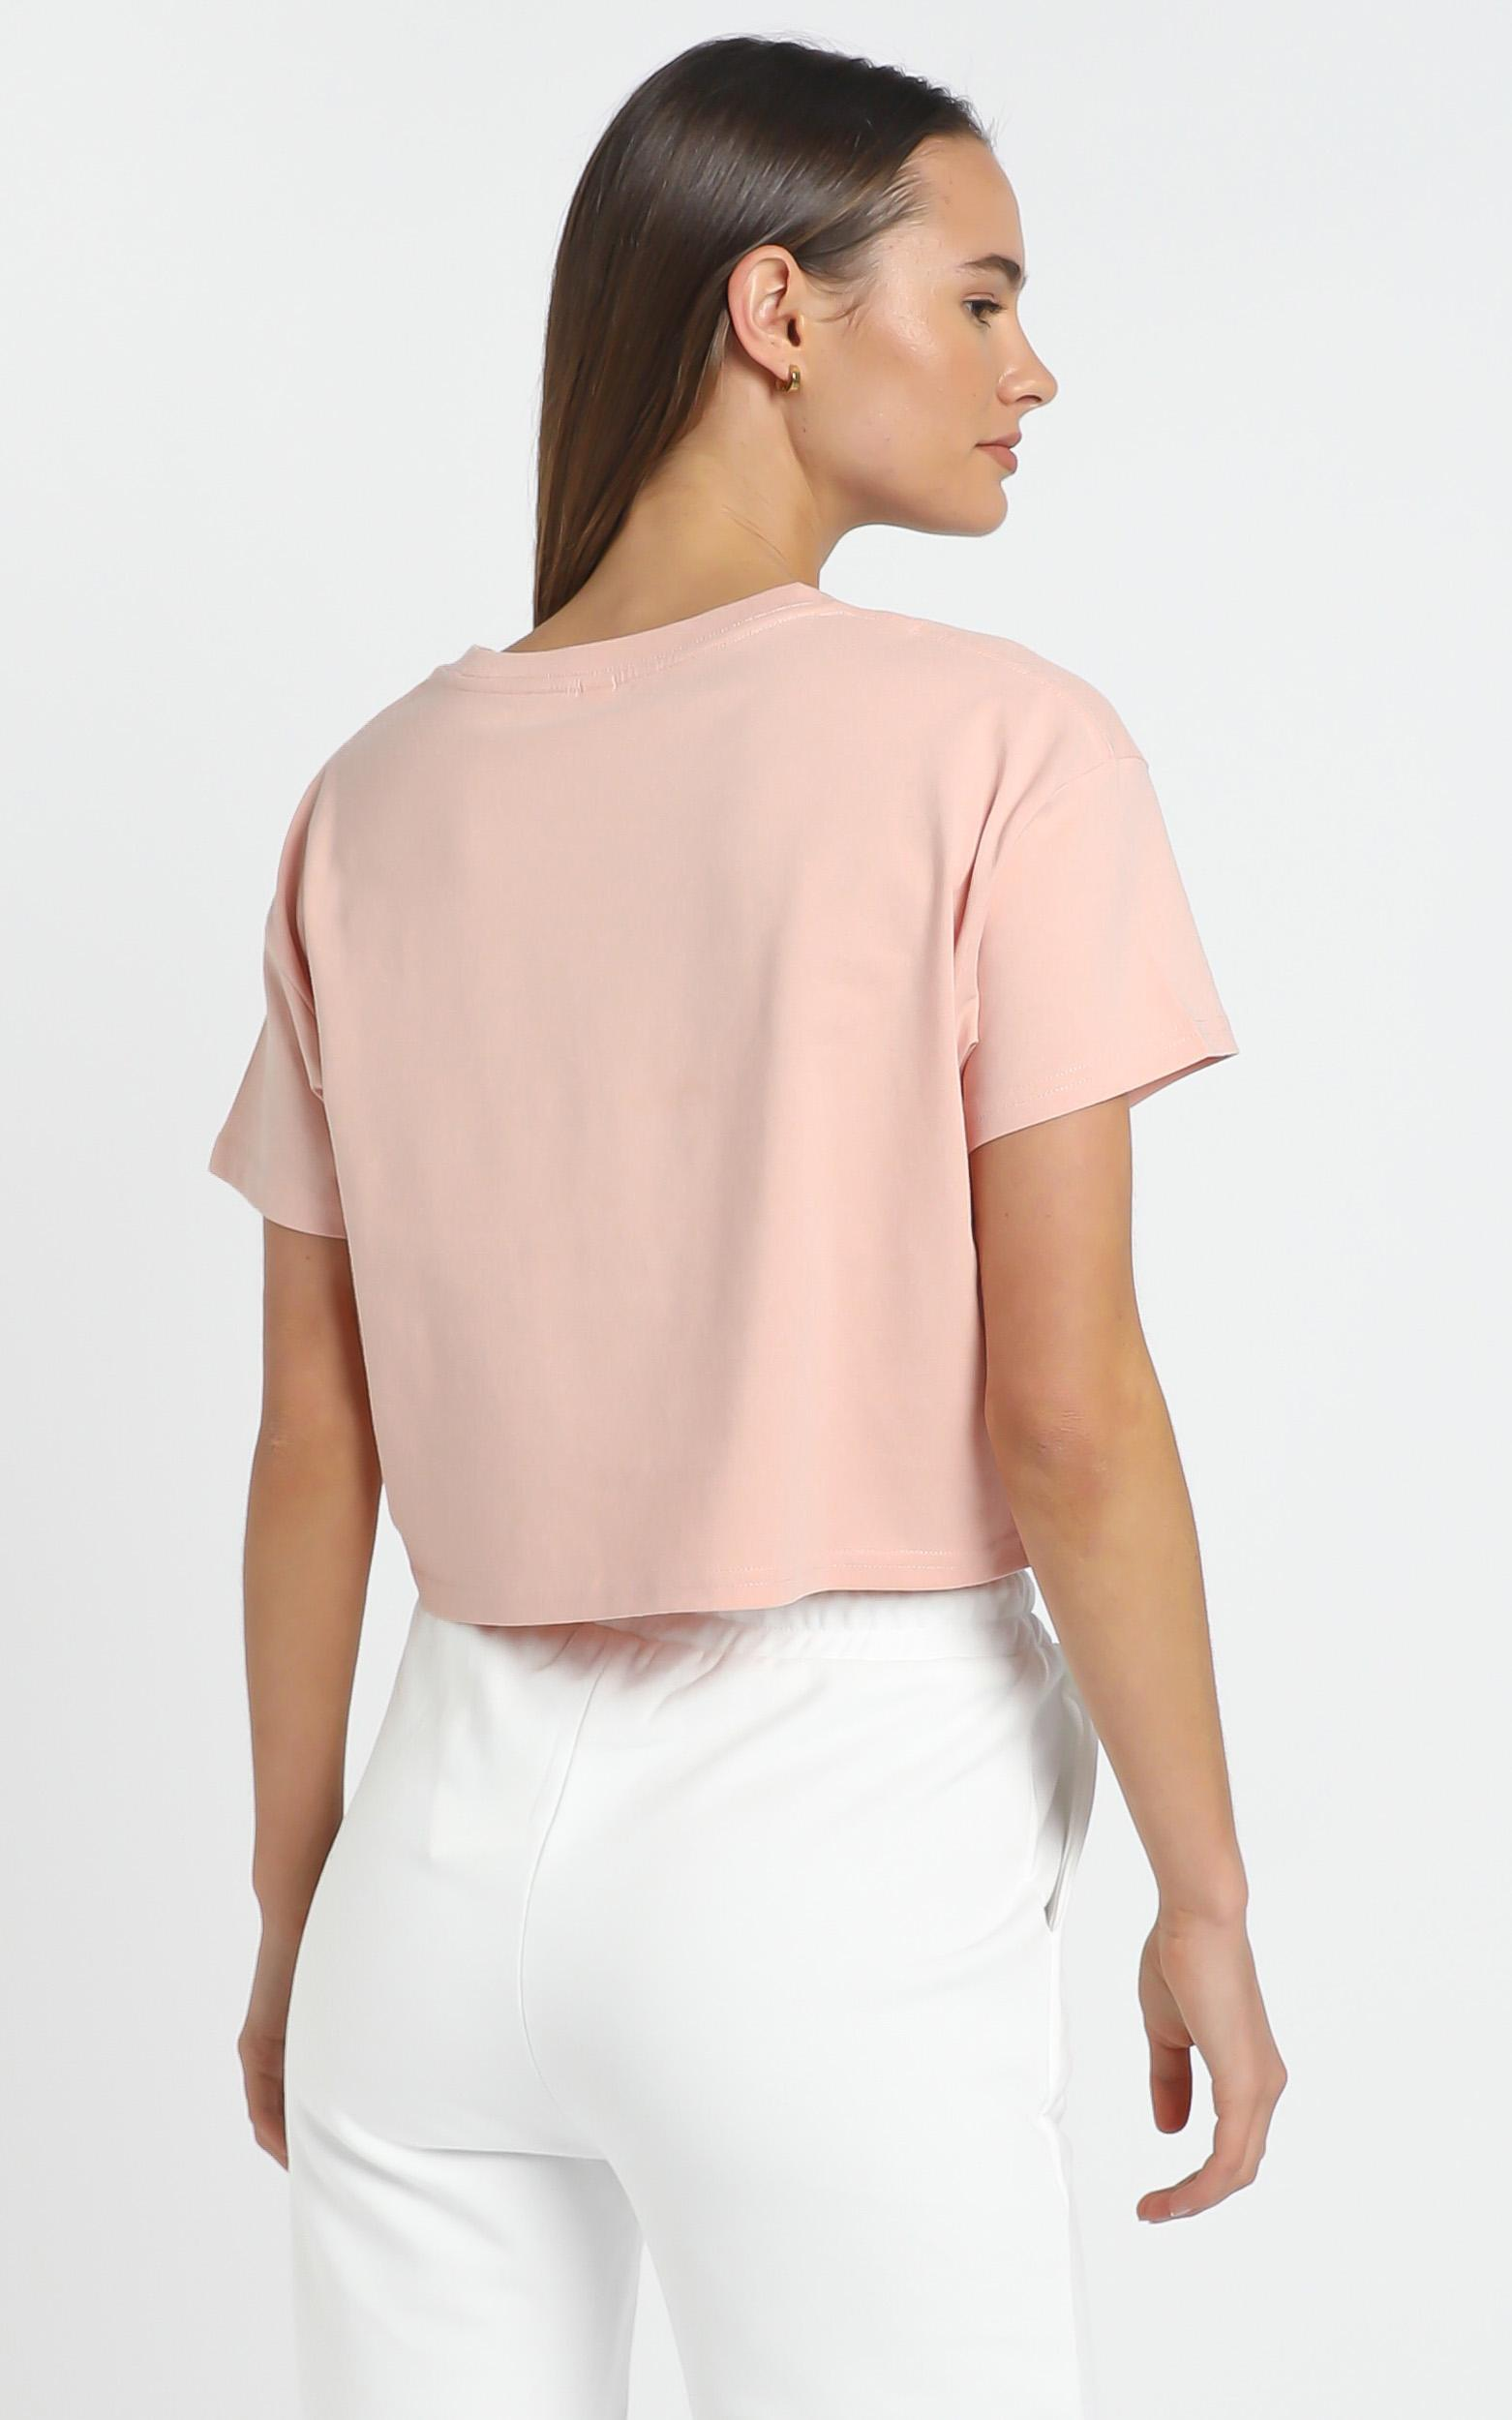 AS Colour - Crop Tee in Pale Pink - XL, Pink, hi-res image number null